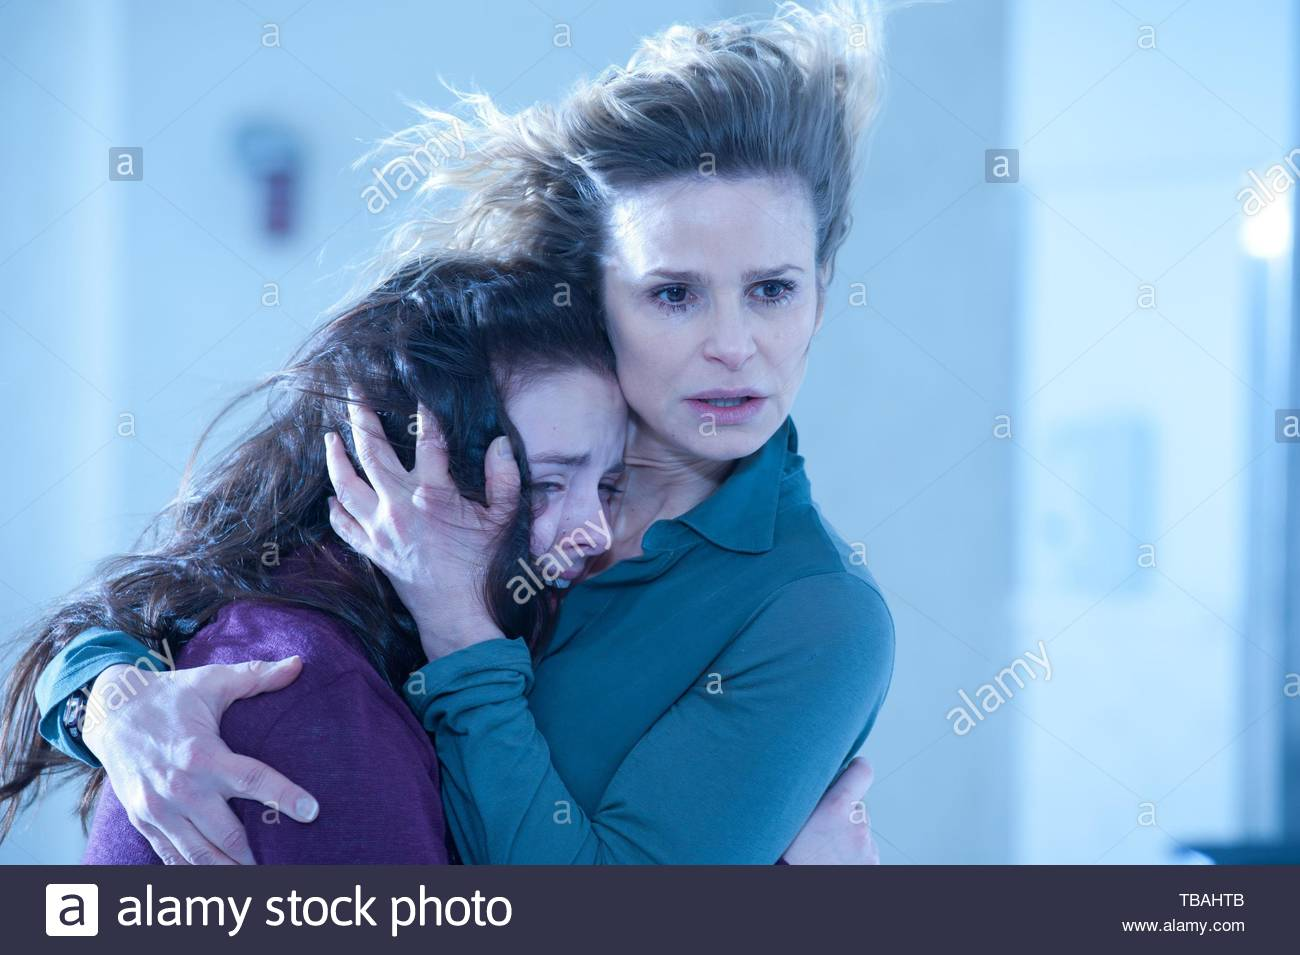 KYRA SEDGWICK and MADISON DAVENPORT in THE POSSESSION (2012). Copyright: Editorial inside use only. This is a publicly distributed handout. Access rights only, no license of copyright provided. Mandatory authorization to Visual Icon (www.visual-icon.com) is required for the reproduction of this image. Credit: GHOST HOUSE PICTURES / Album - Stock Image